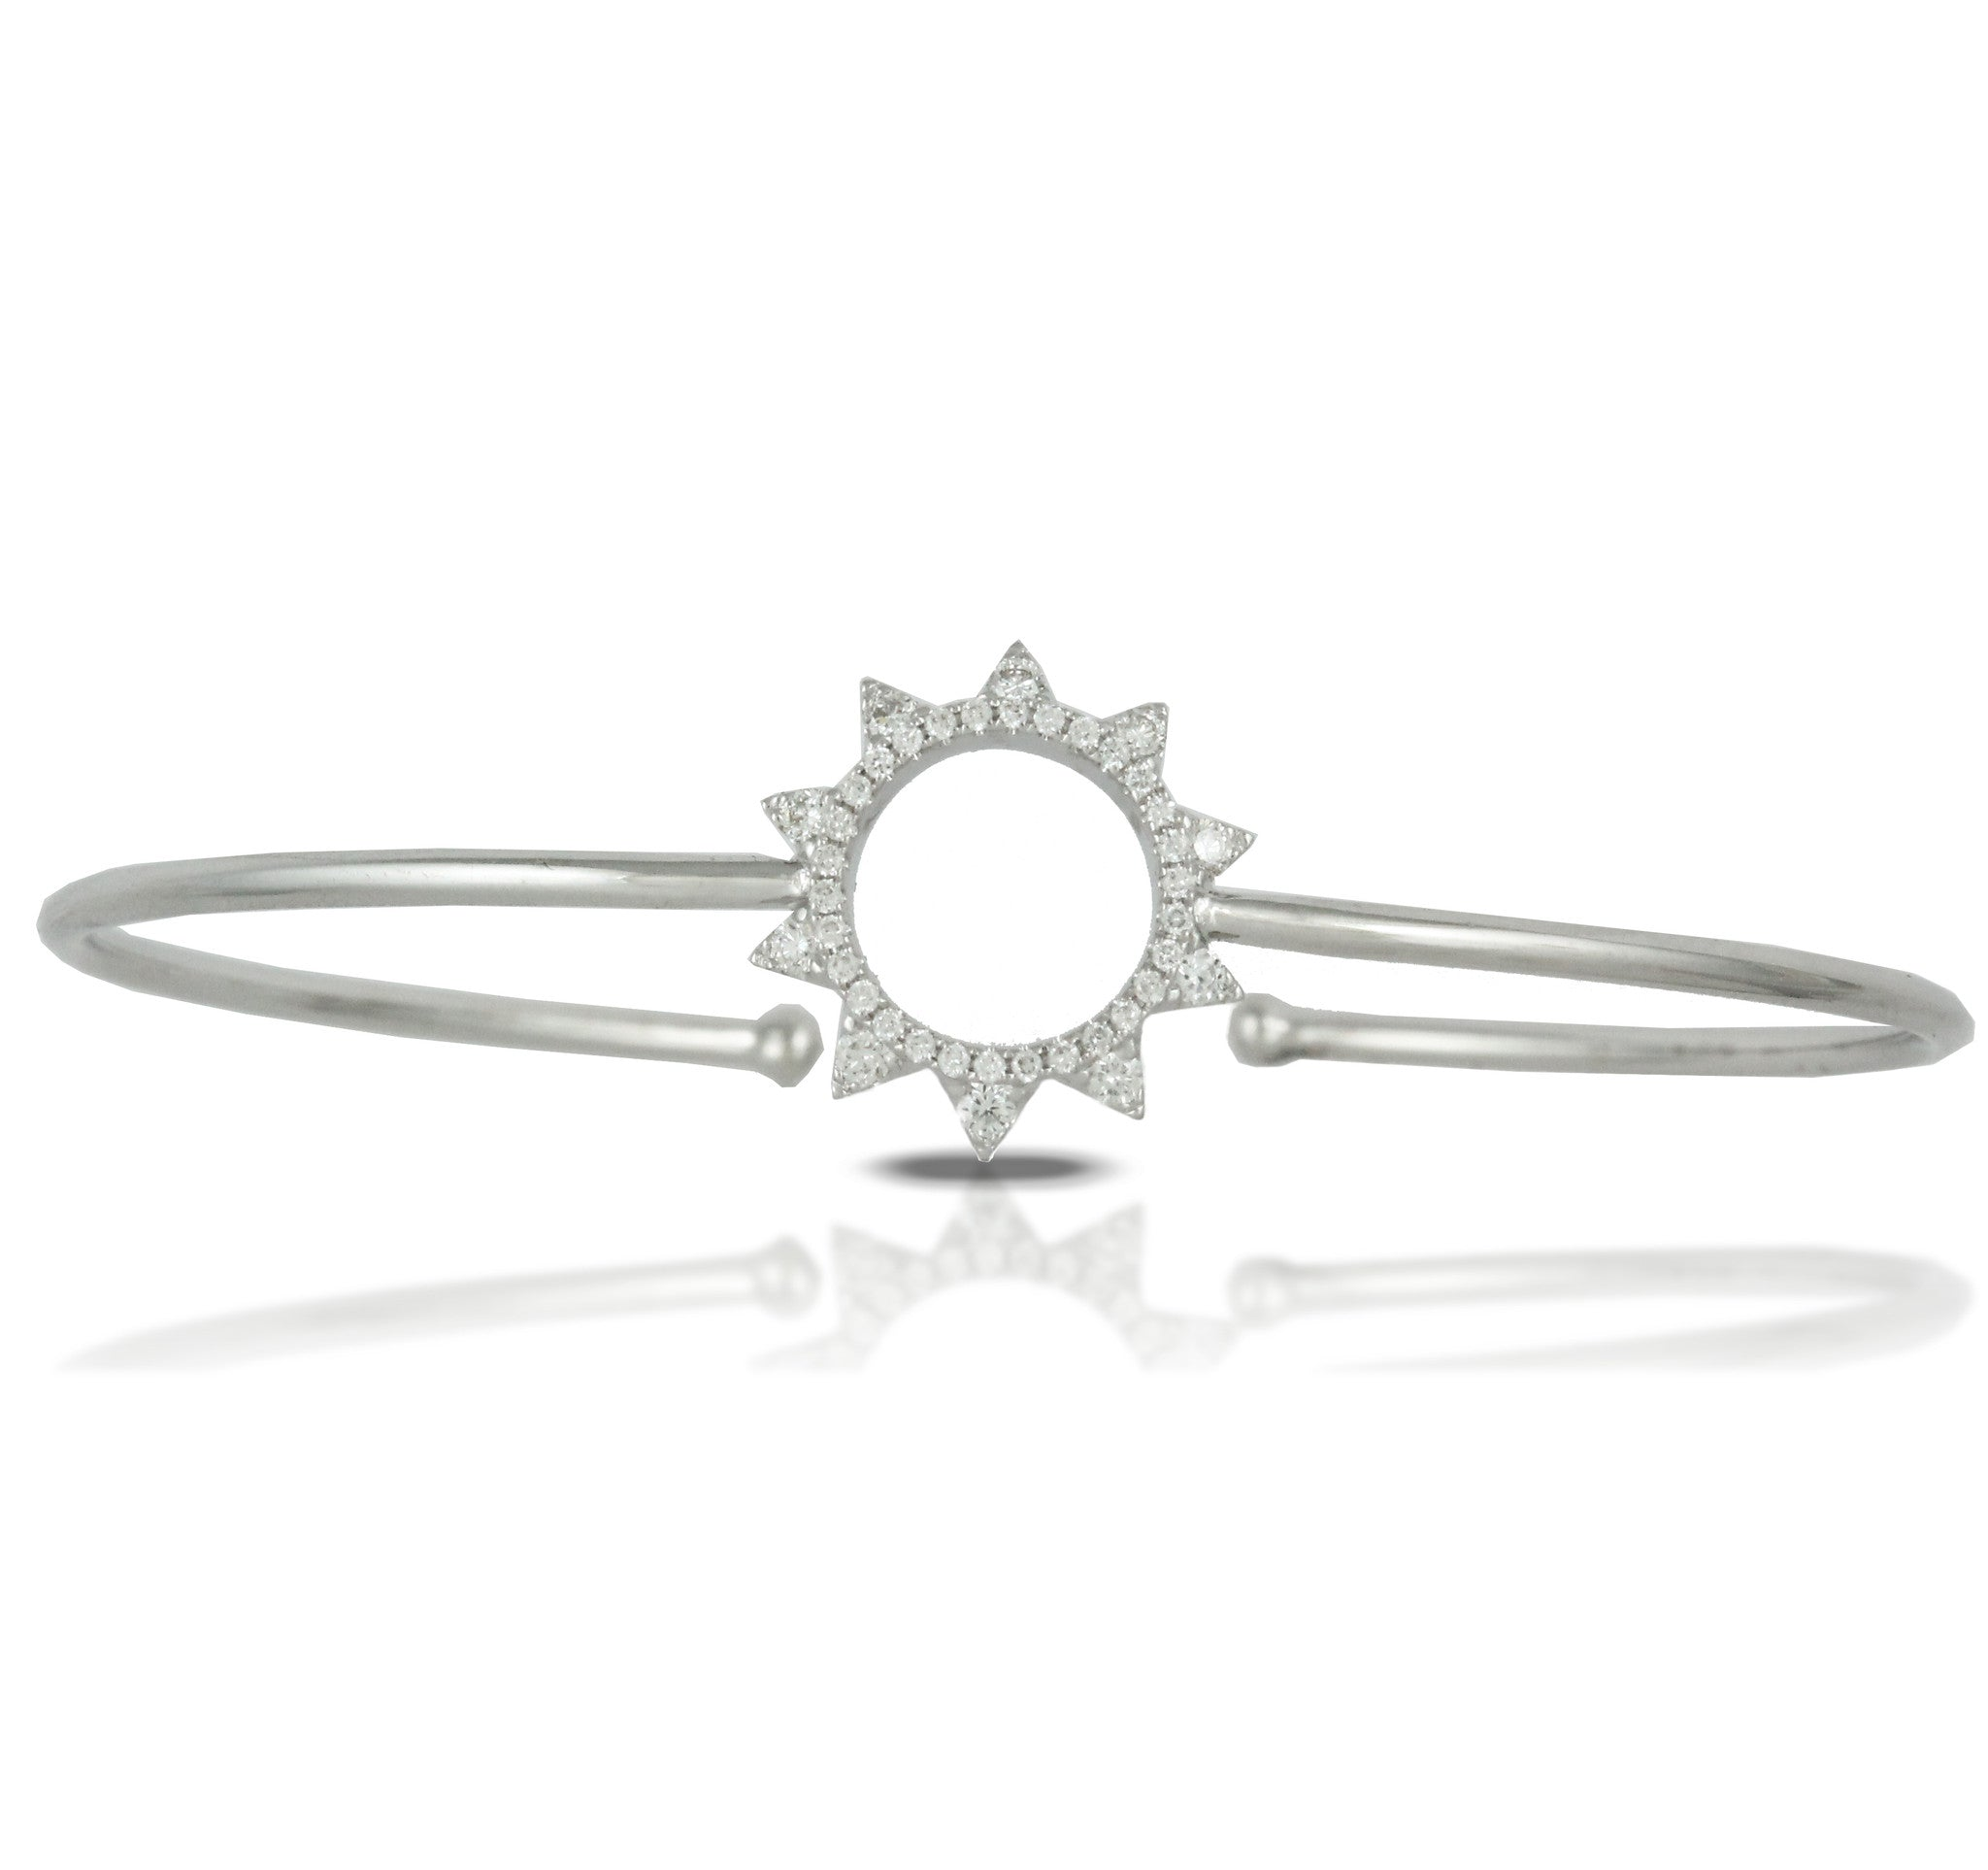 Doves Ladies' 18k White Gold Diamond Starburst Bangle by Jewelry Designer Doron Paloma